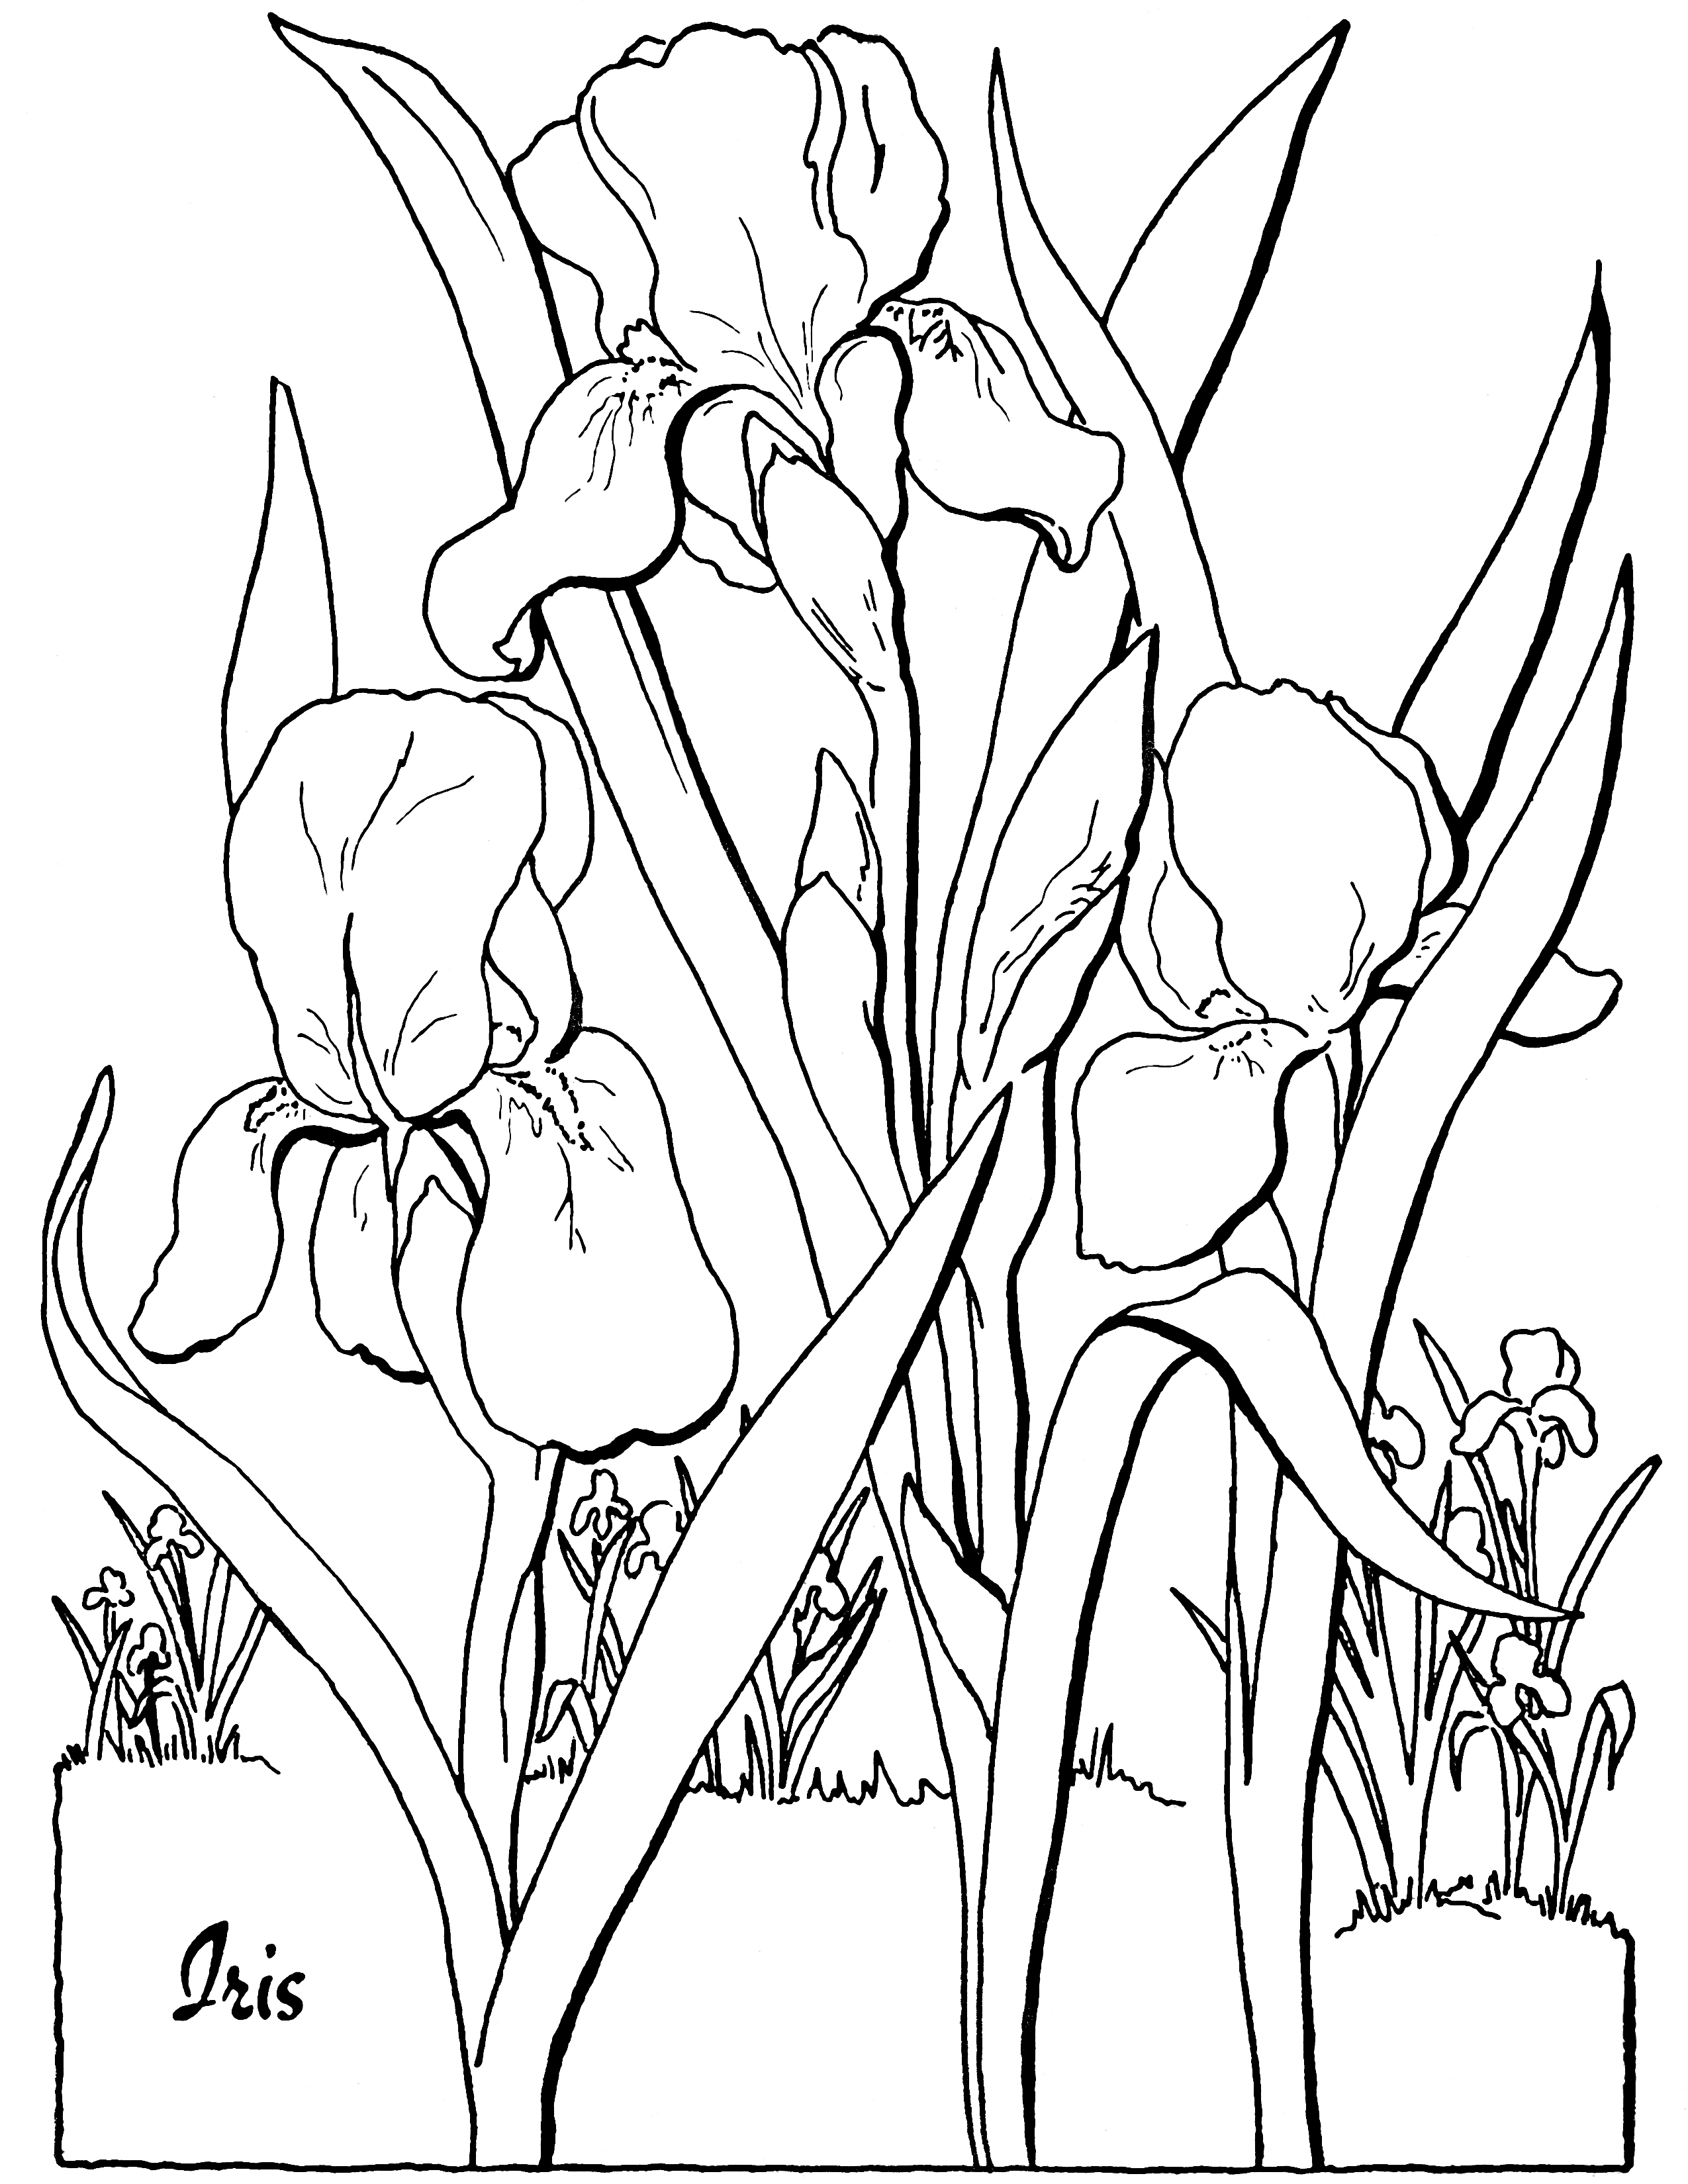 coloring pages for adults flowers flowers in a square flowers adult coloring pages coloring adults for pages flowers